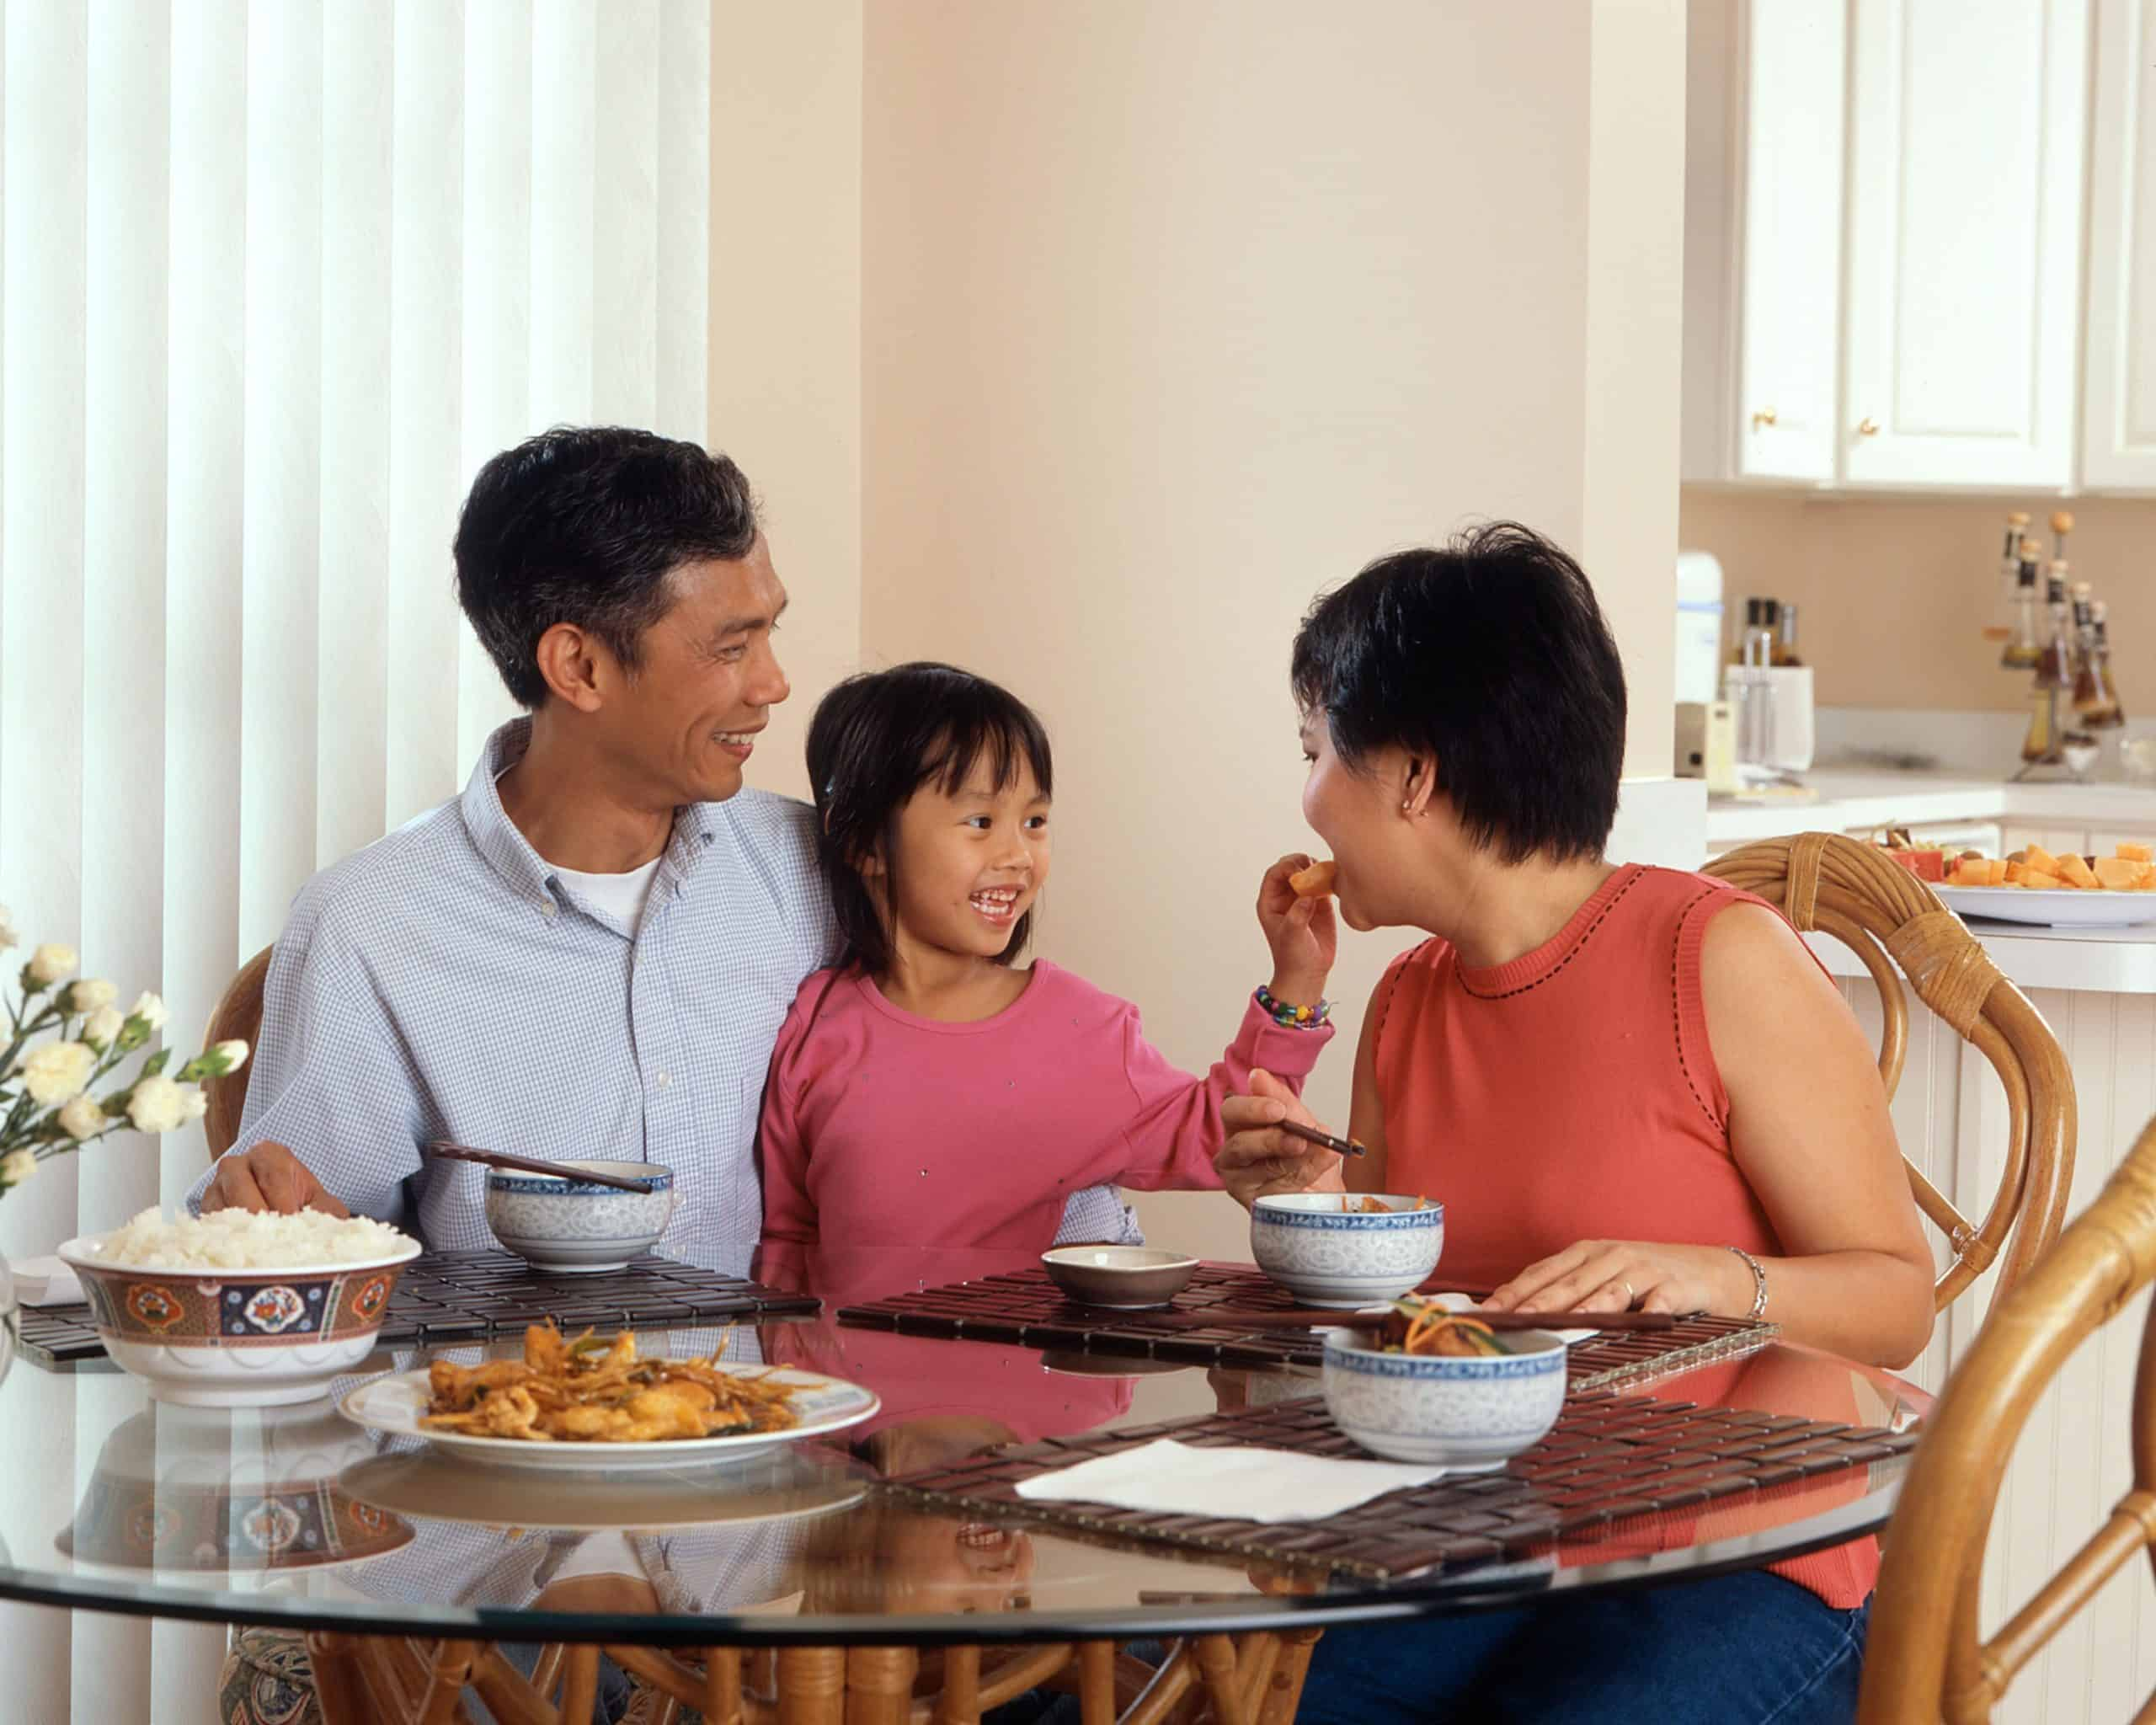 Parenting Tips On Healthy Child Development